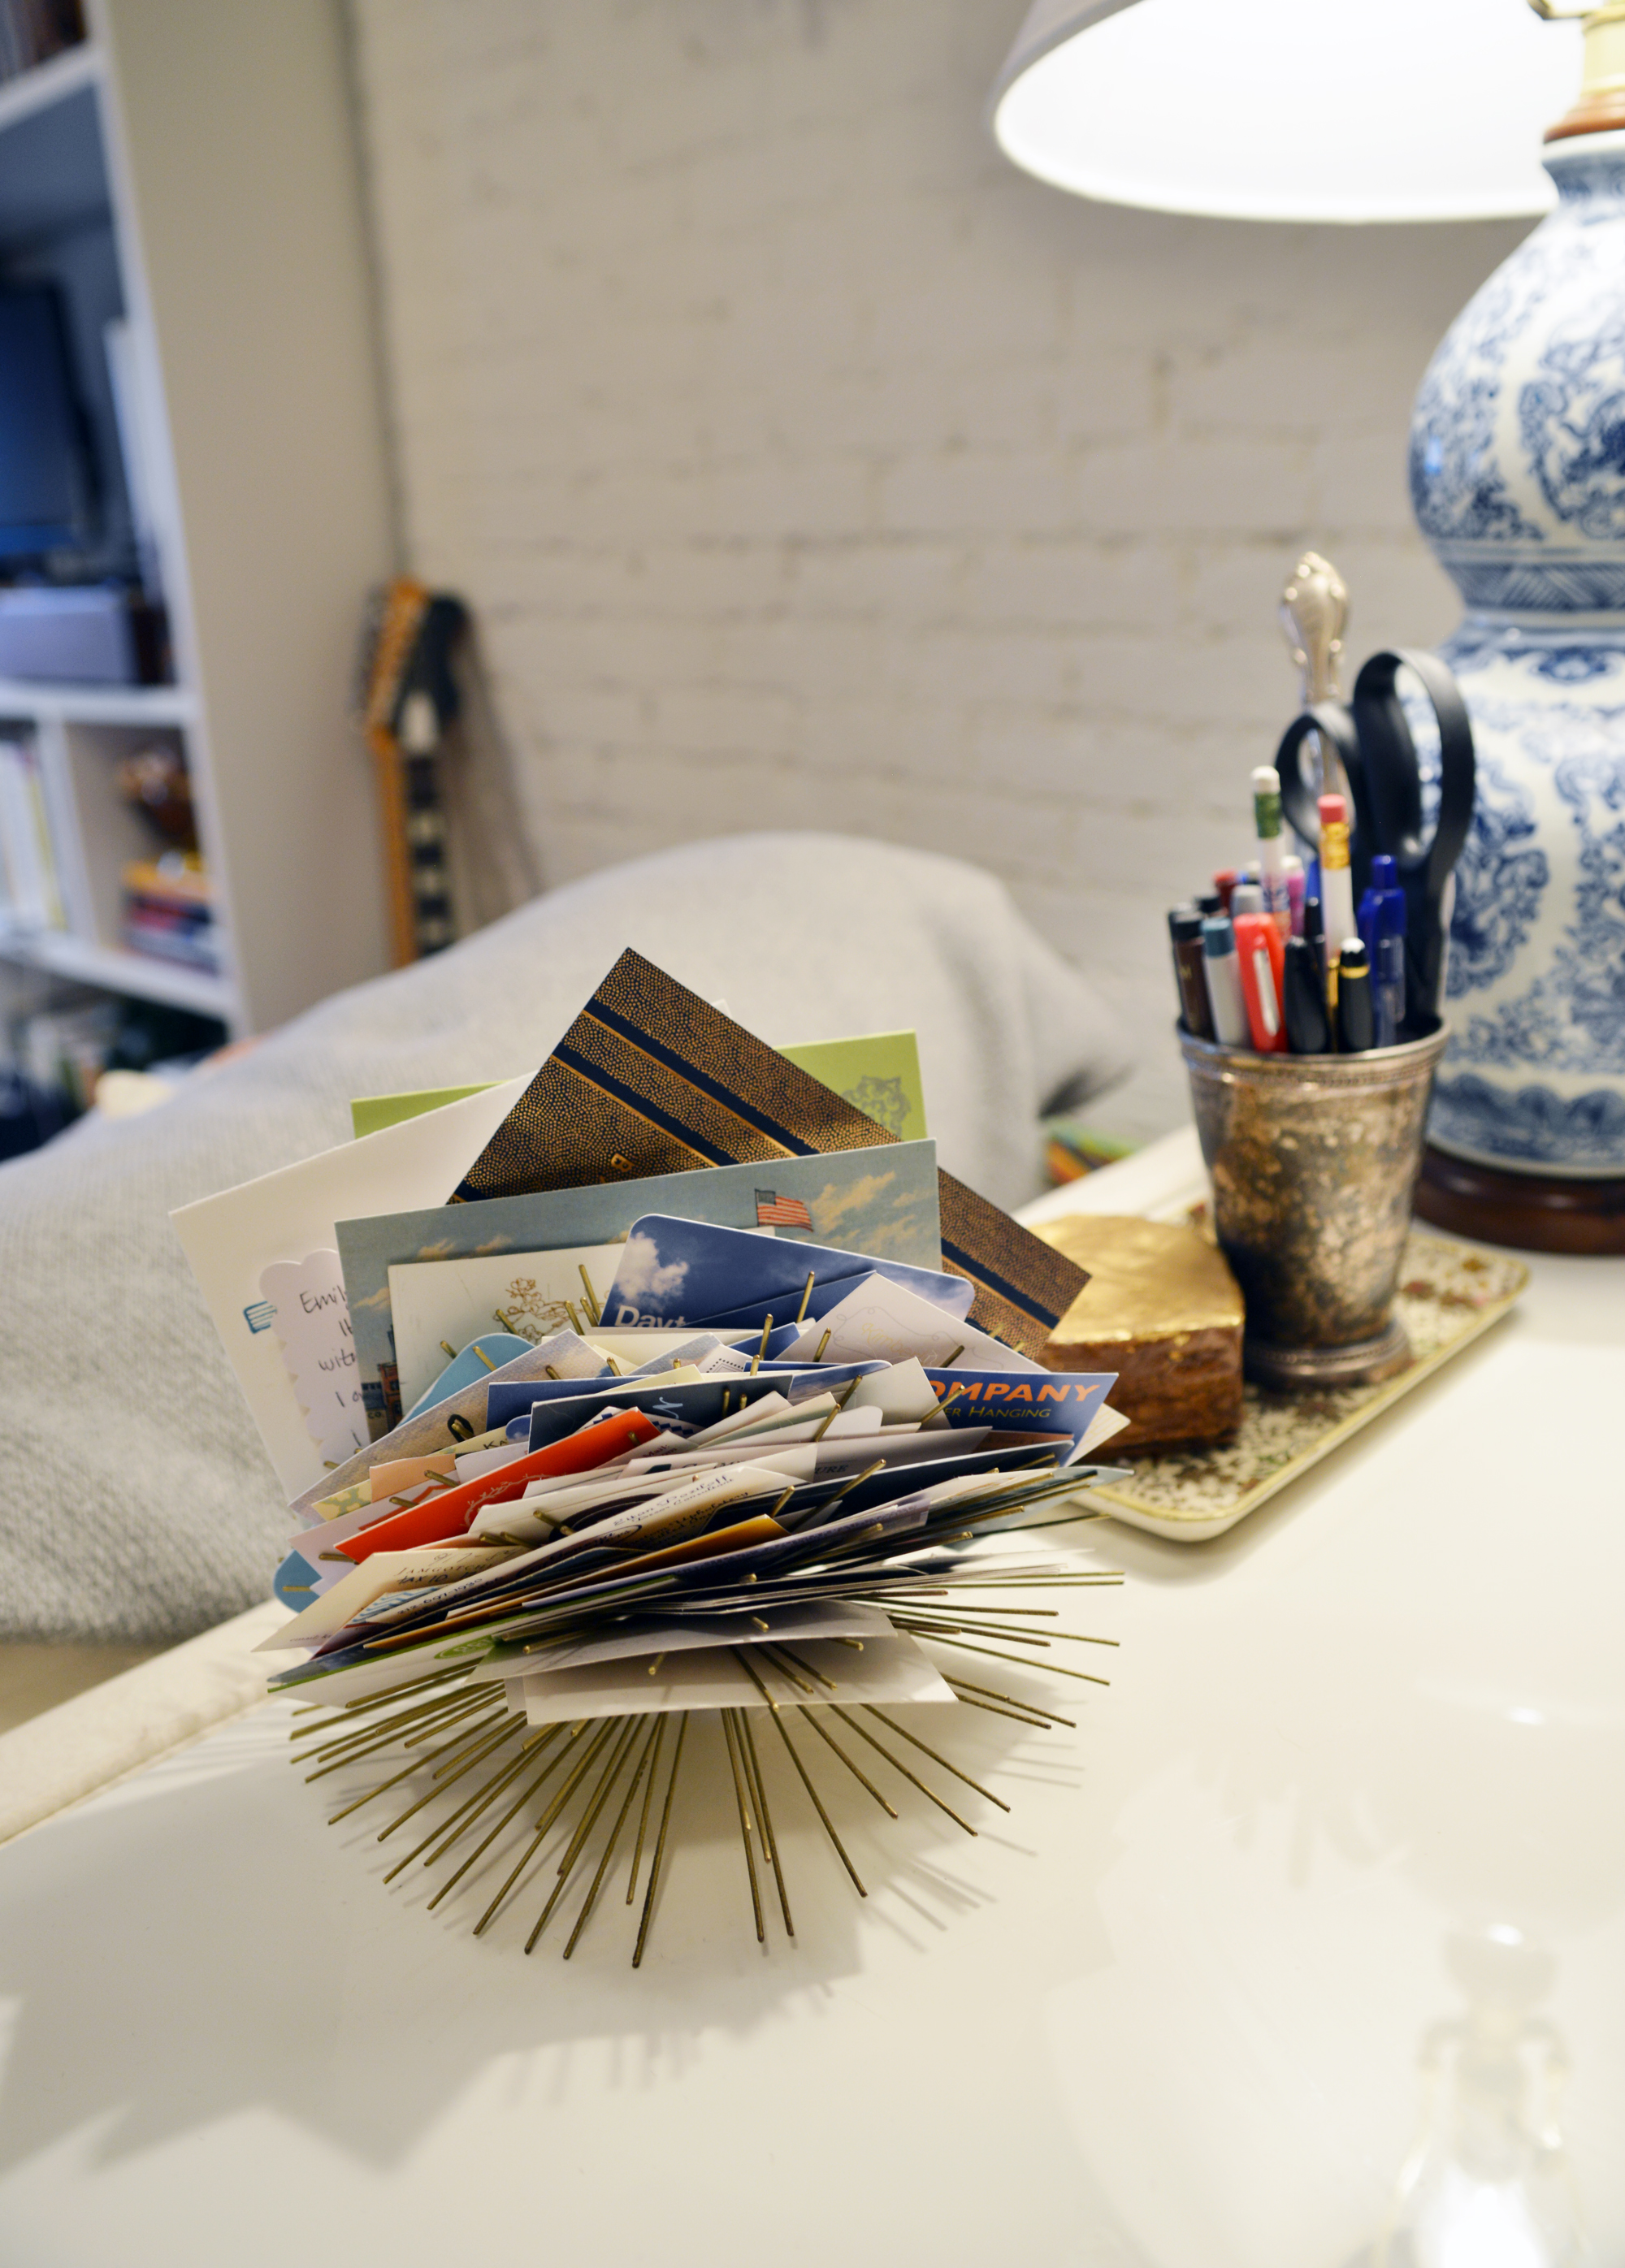 Sea Urchin or Wallflower Business Card Holder as Seen in Emily's Apartment| Photography By Lauren L Caron | Fourth Floor Walk Up © 2015